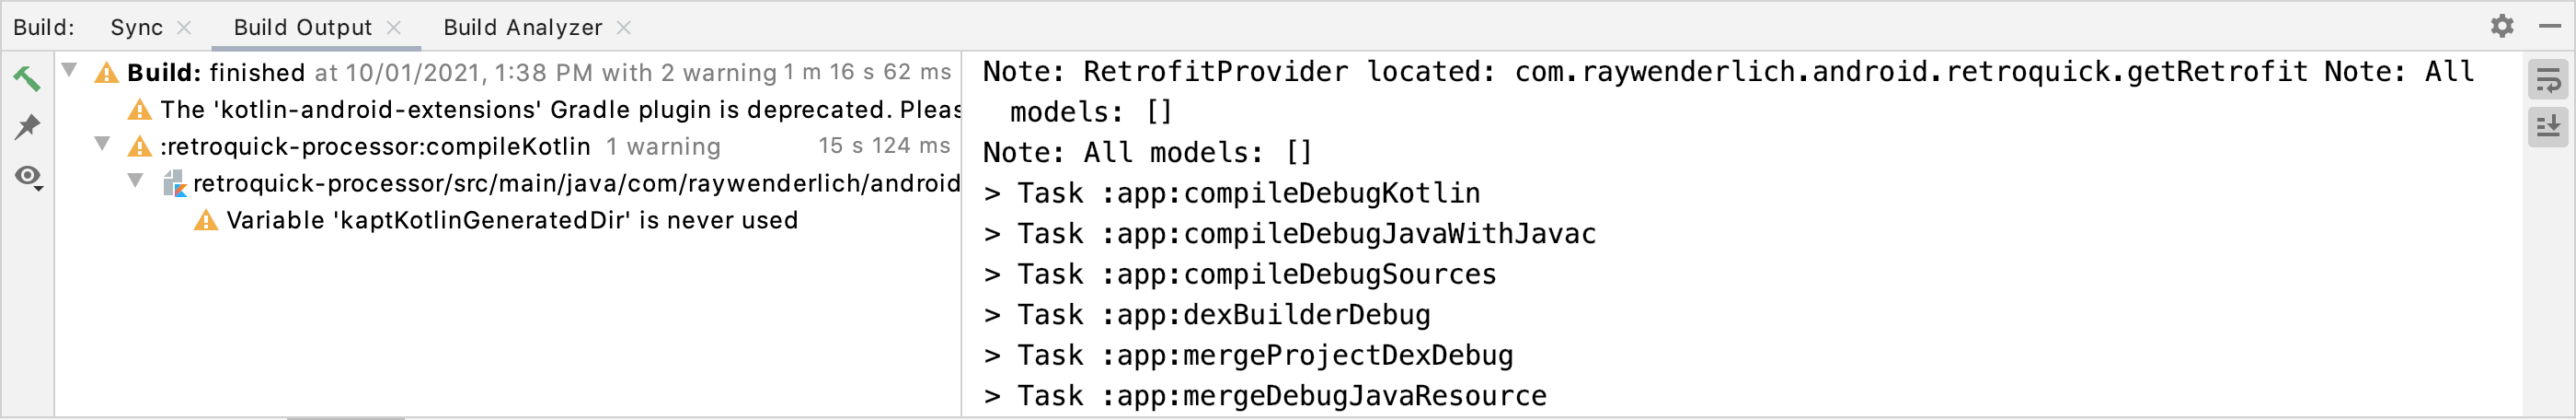 The Build output window presents a note with an empty list of models